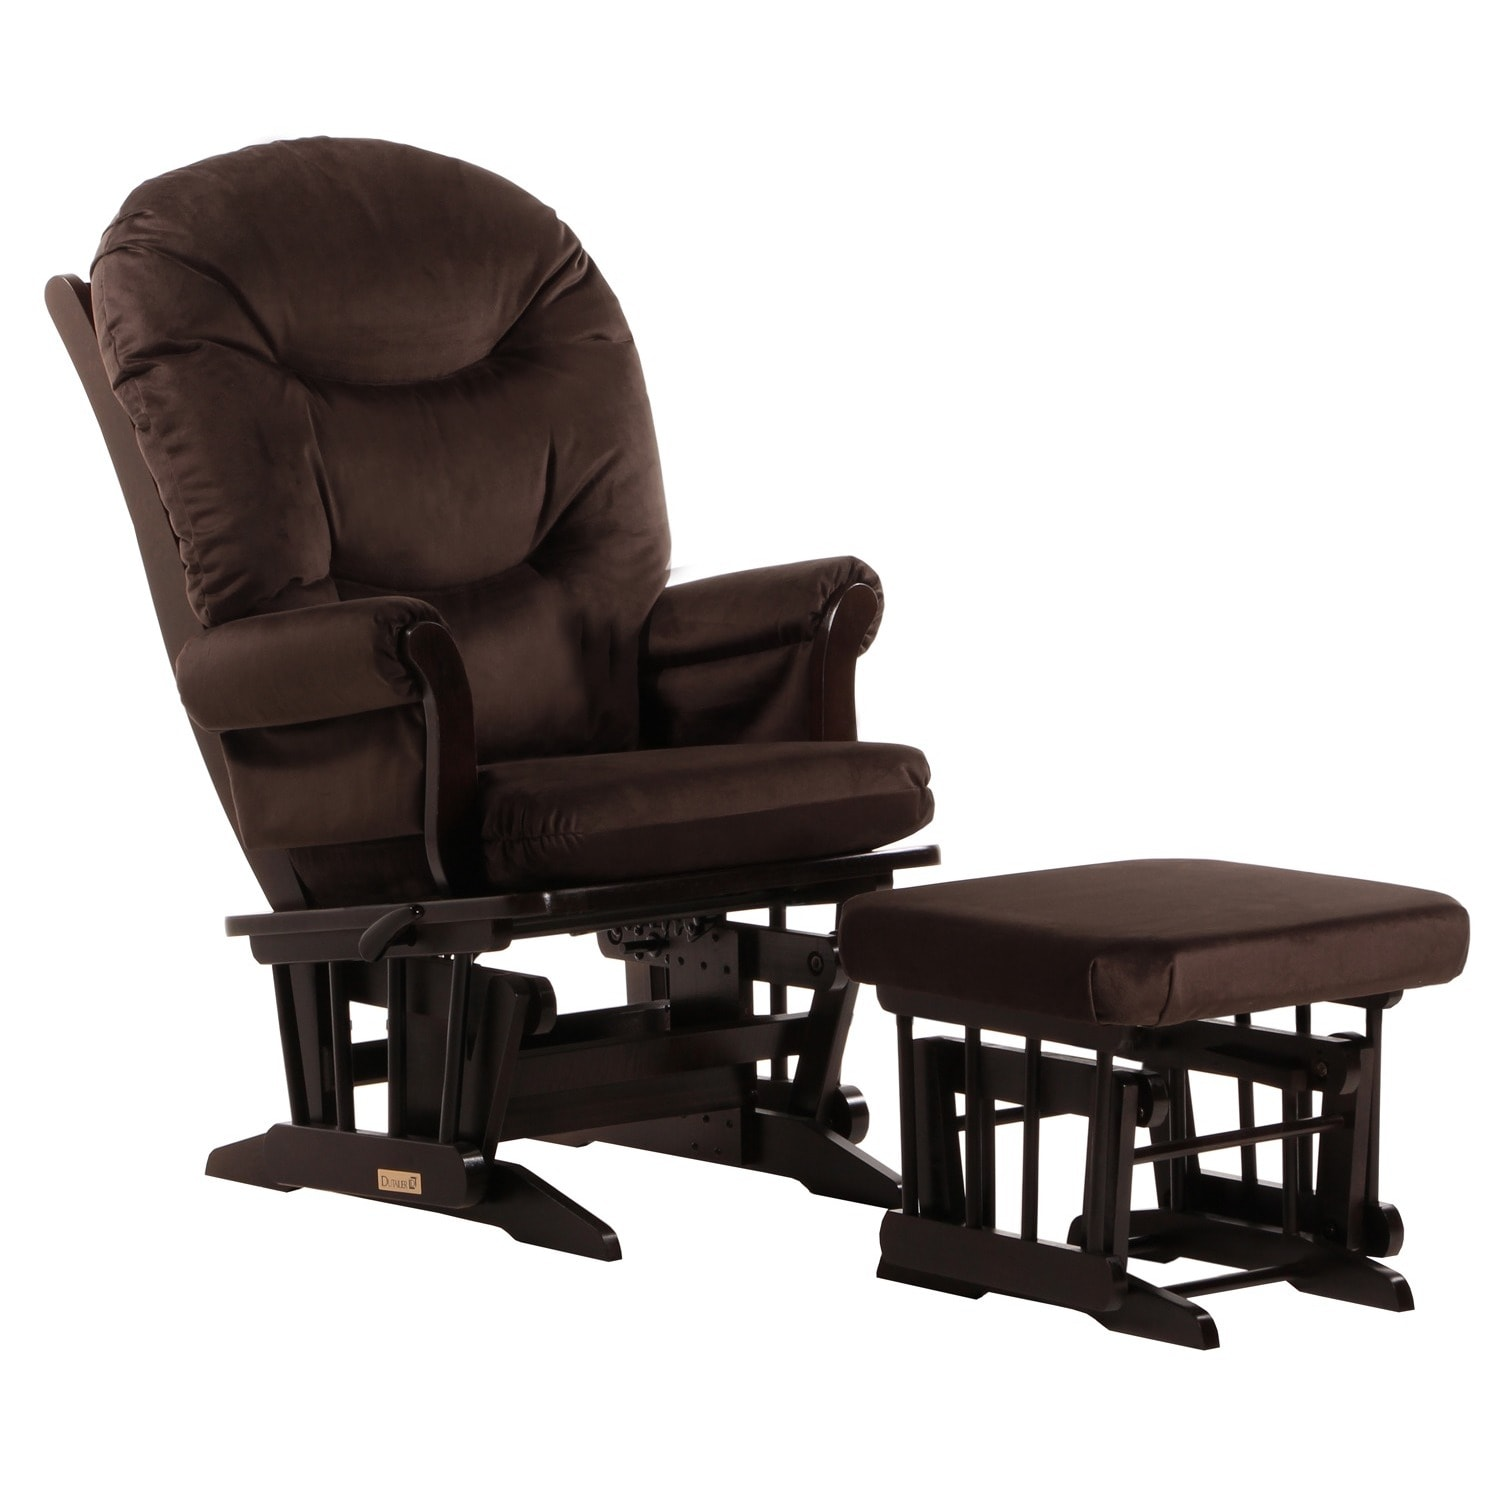 Dutailier Hardwood Reclining Glider And Ottoman On Sale Overstock 5671560